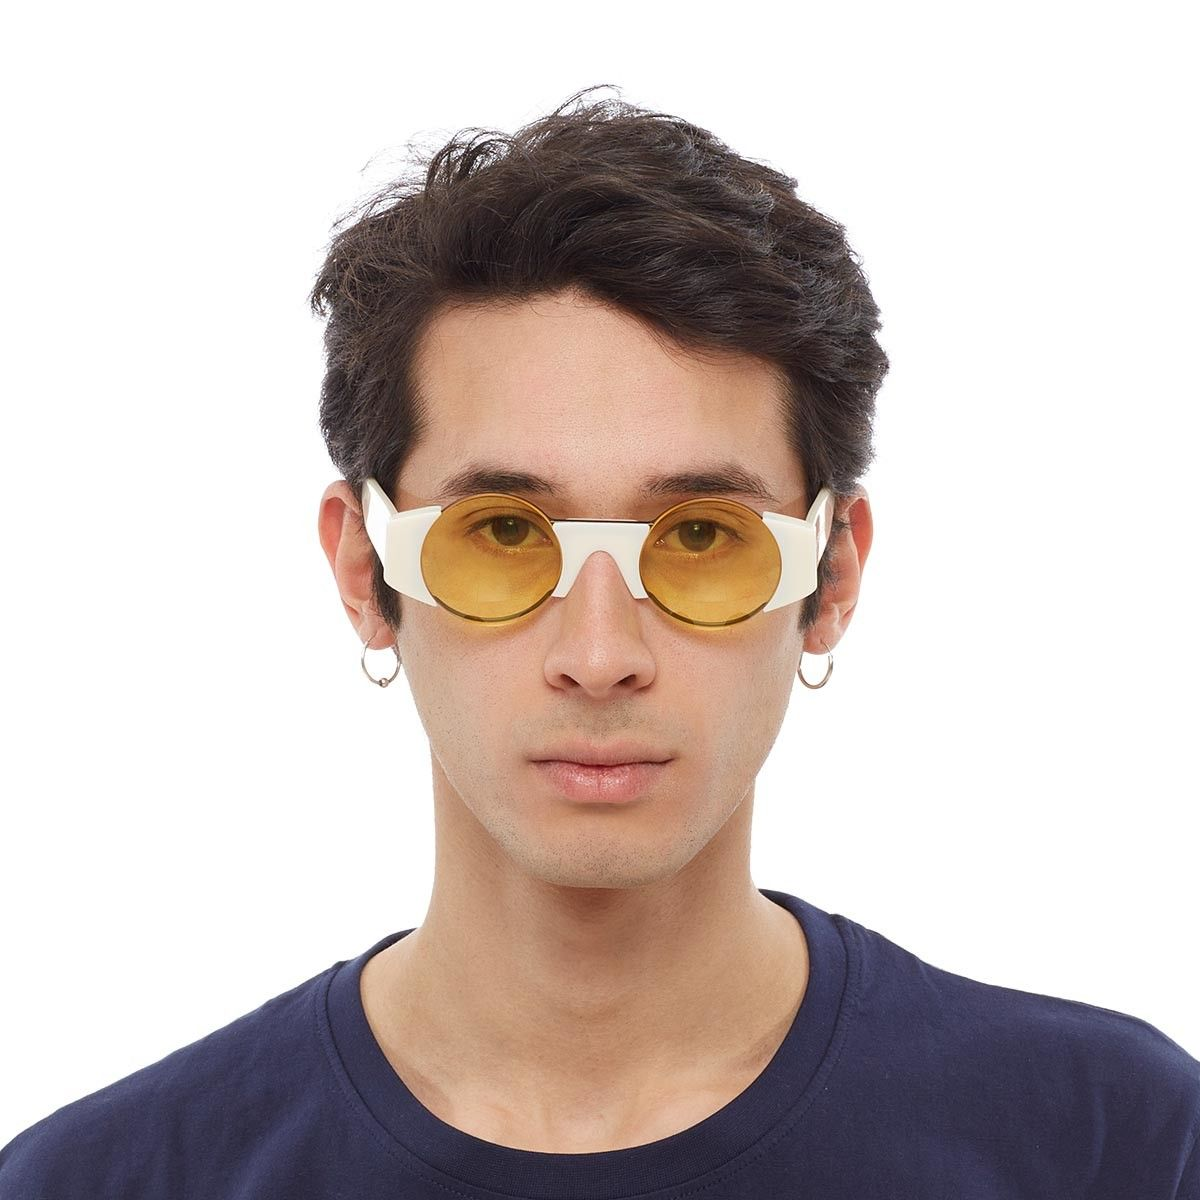 d5fef4a54e6 Super sunglasses 1 from Gosha Rubchinskiy x SUPER collection in white These  sunglasses from Gosha Rubchinskiy new collection are made in collaboration  with ...